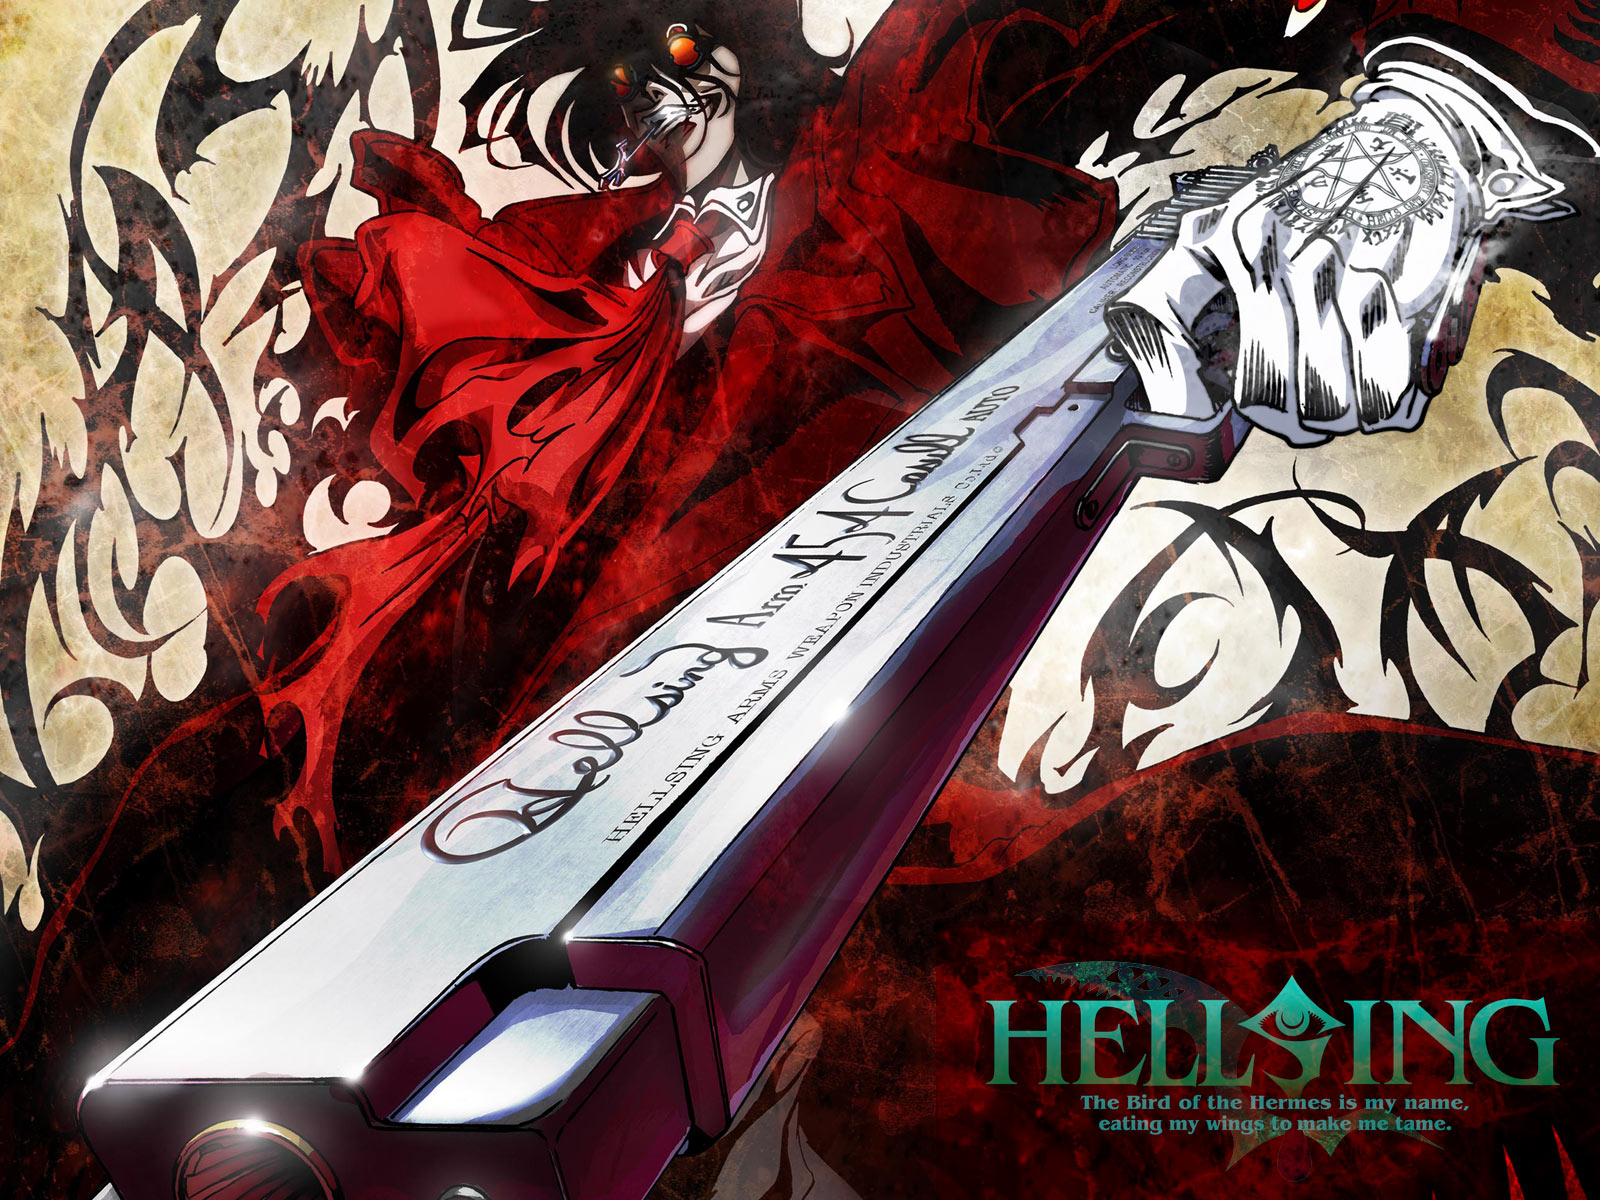 anime%2Bwallpaper%2Bvanhellsing Variations in uptake of faecal occult blood test by age and sex